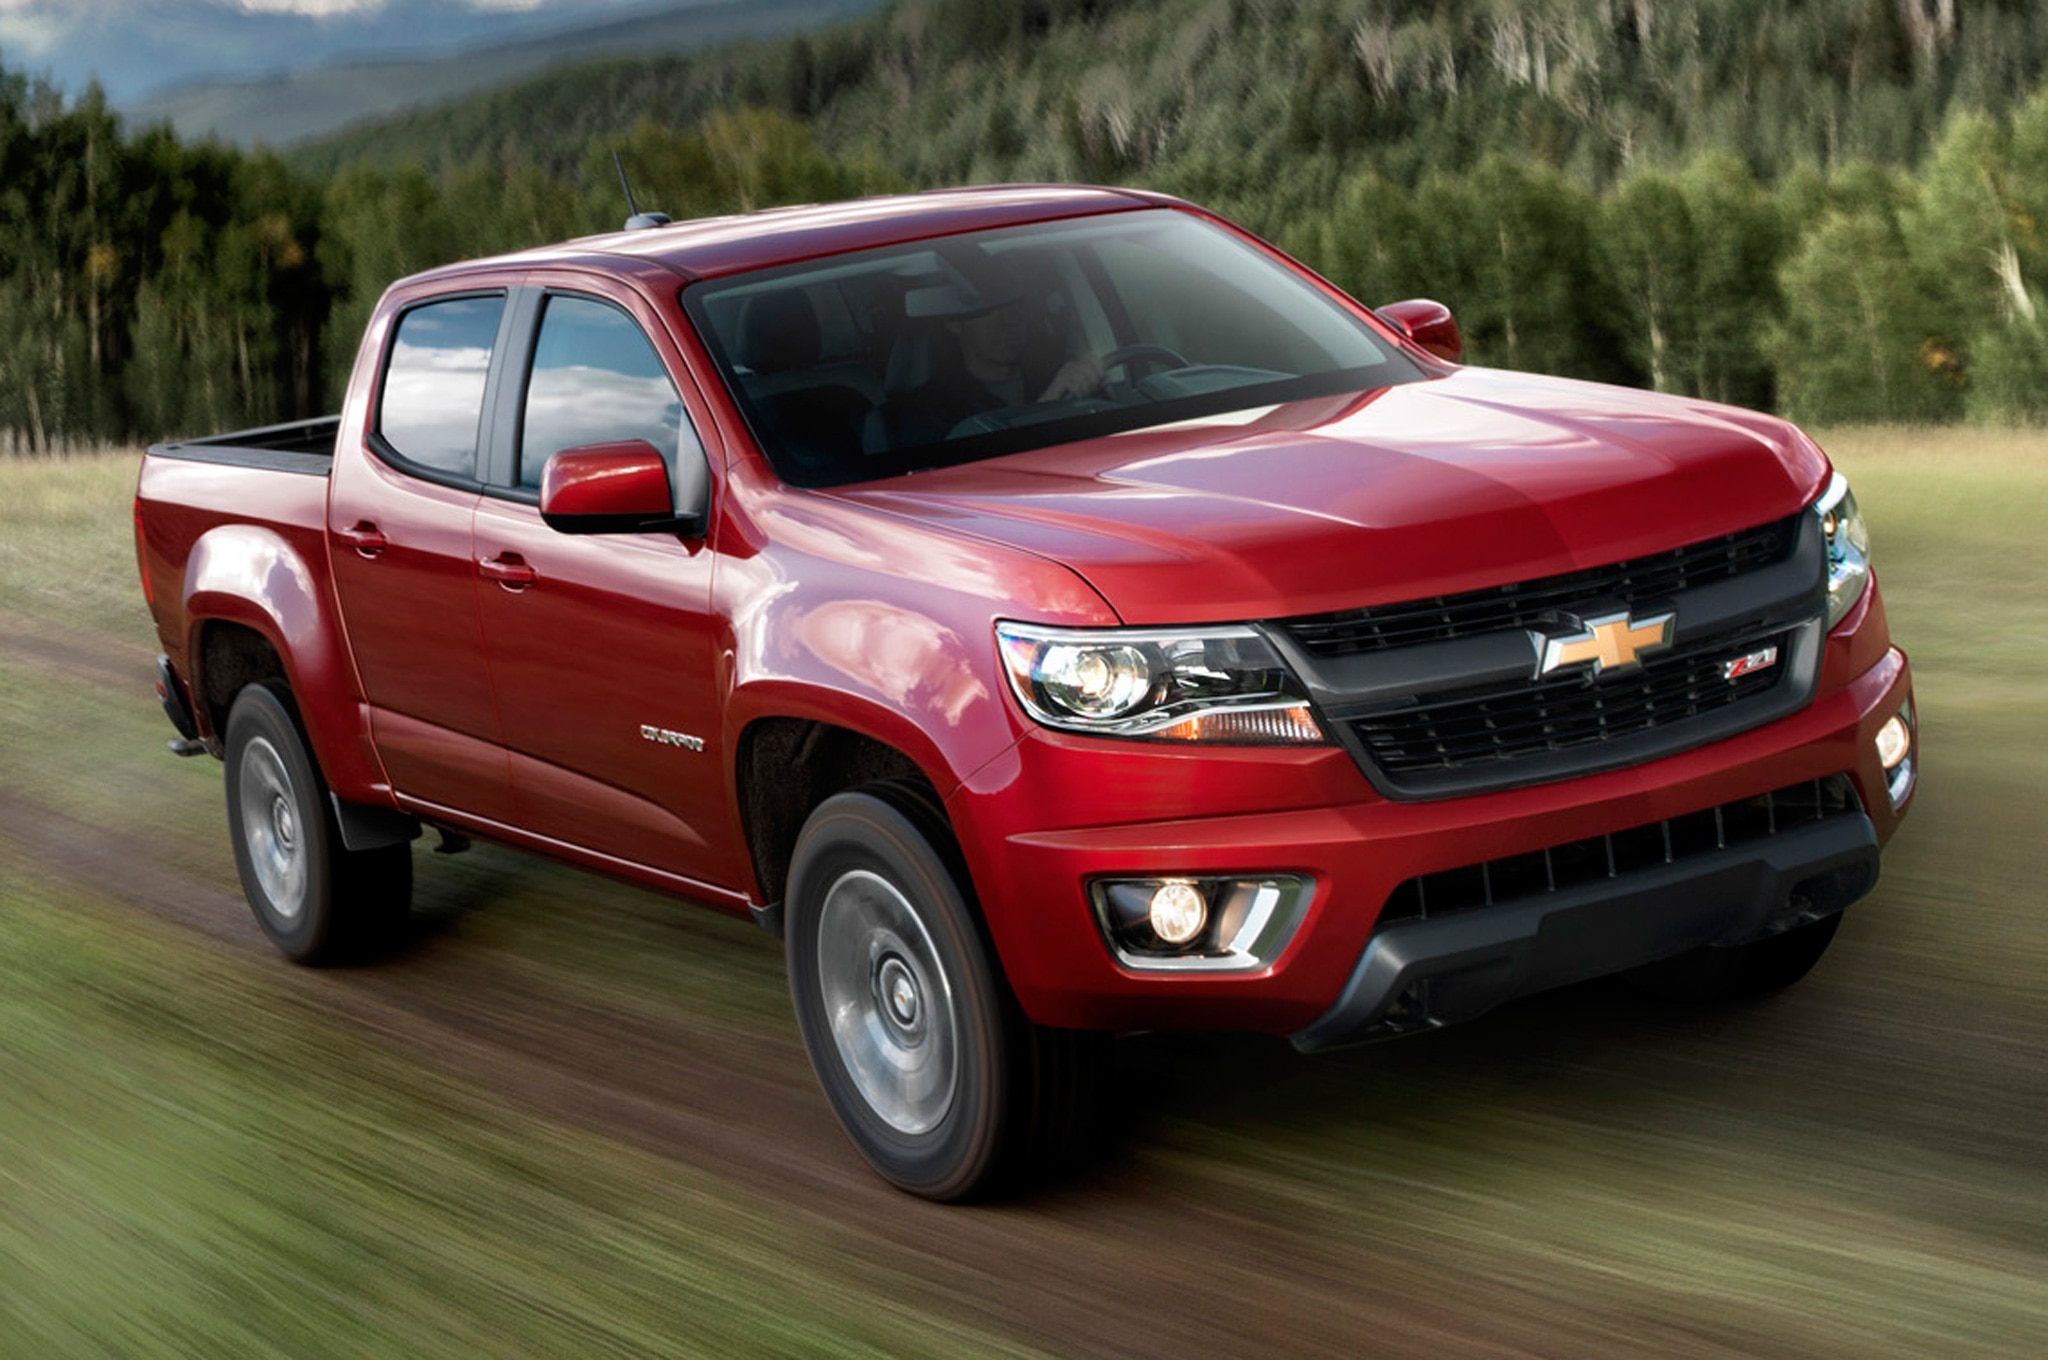 2015 Chevrolet Colorado Marks Six Generations Of Small Chevy Trucks 1980 Luv Specs Show More